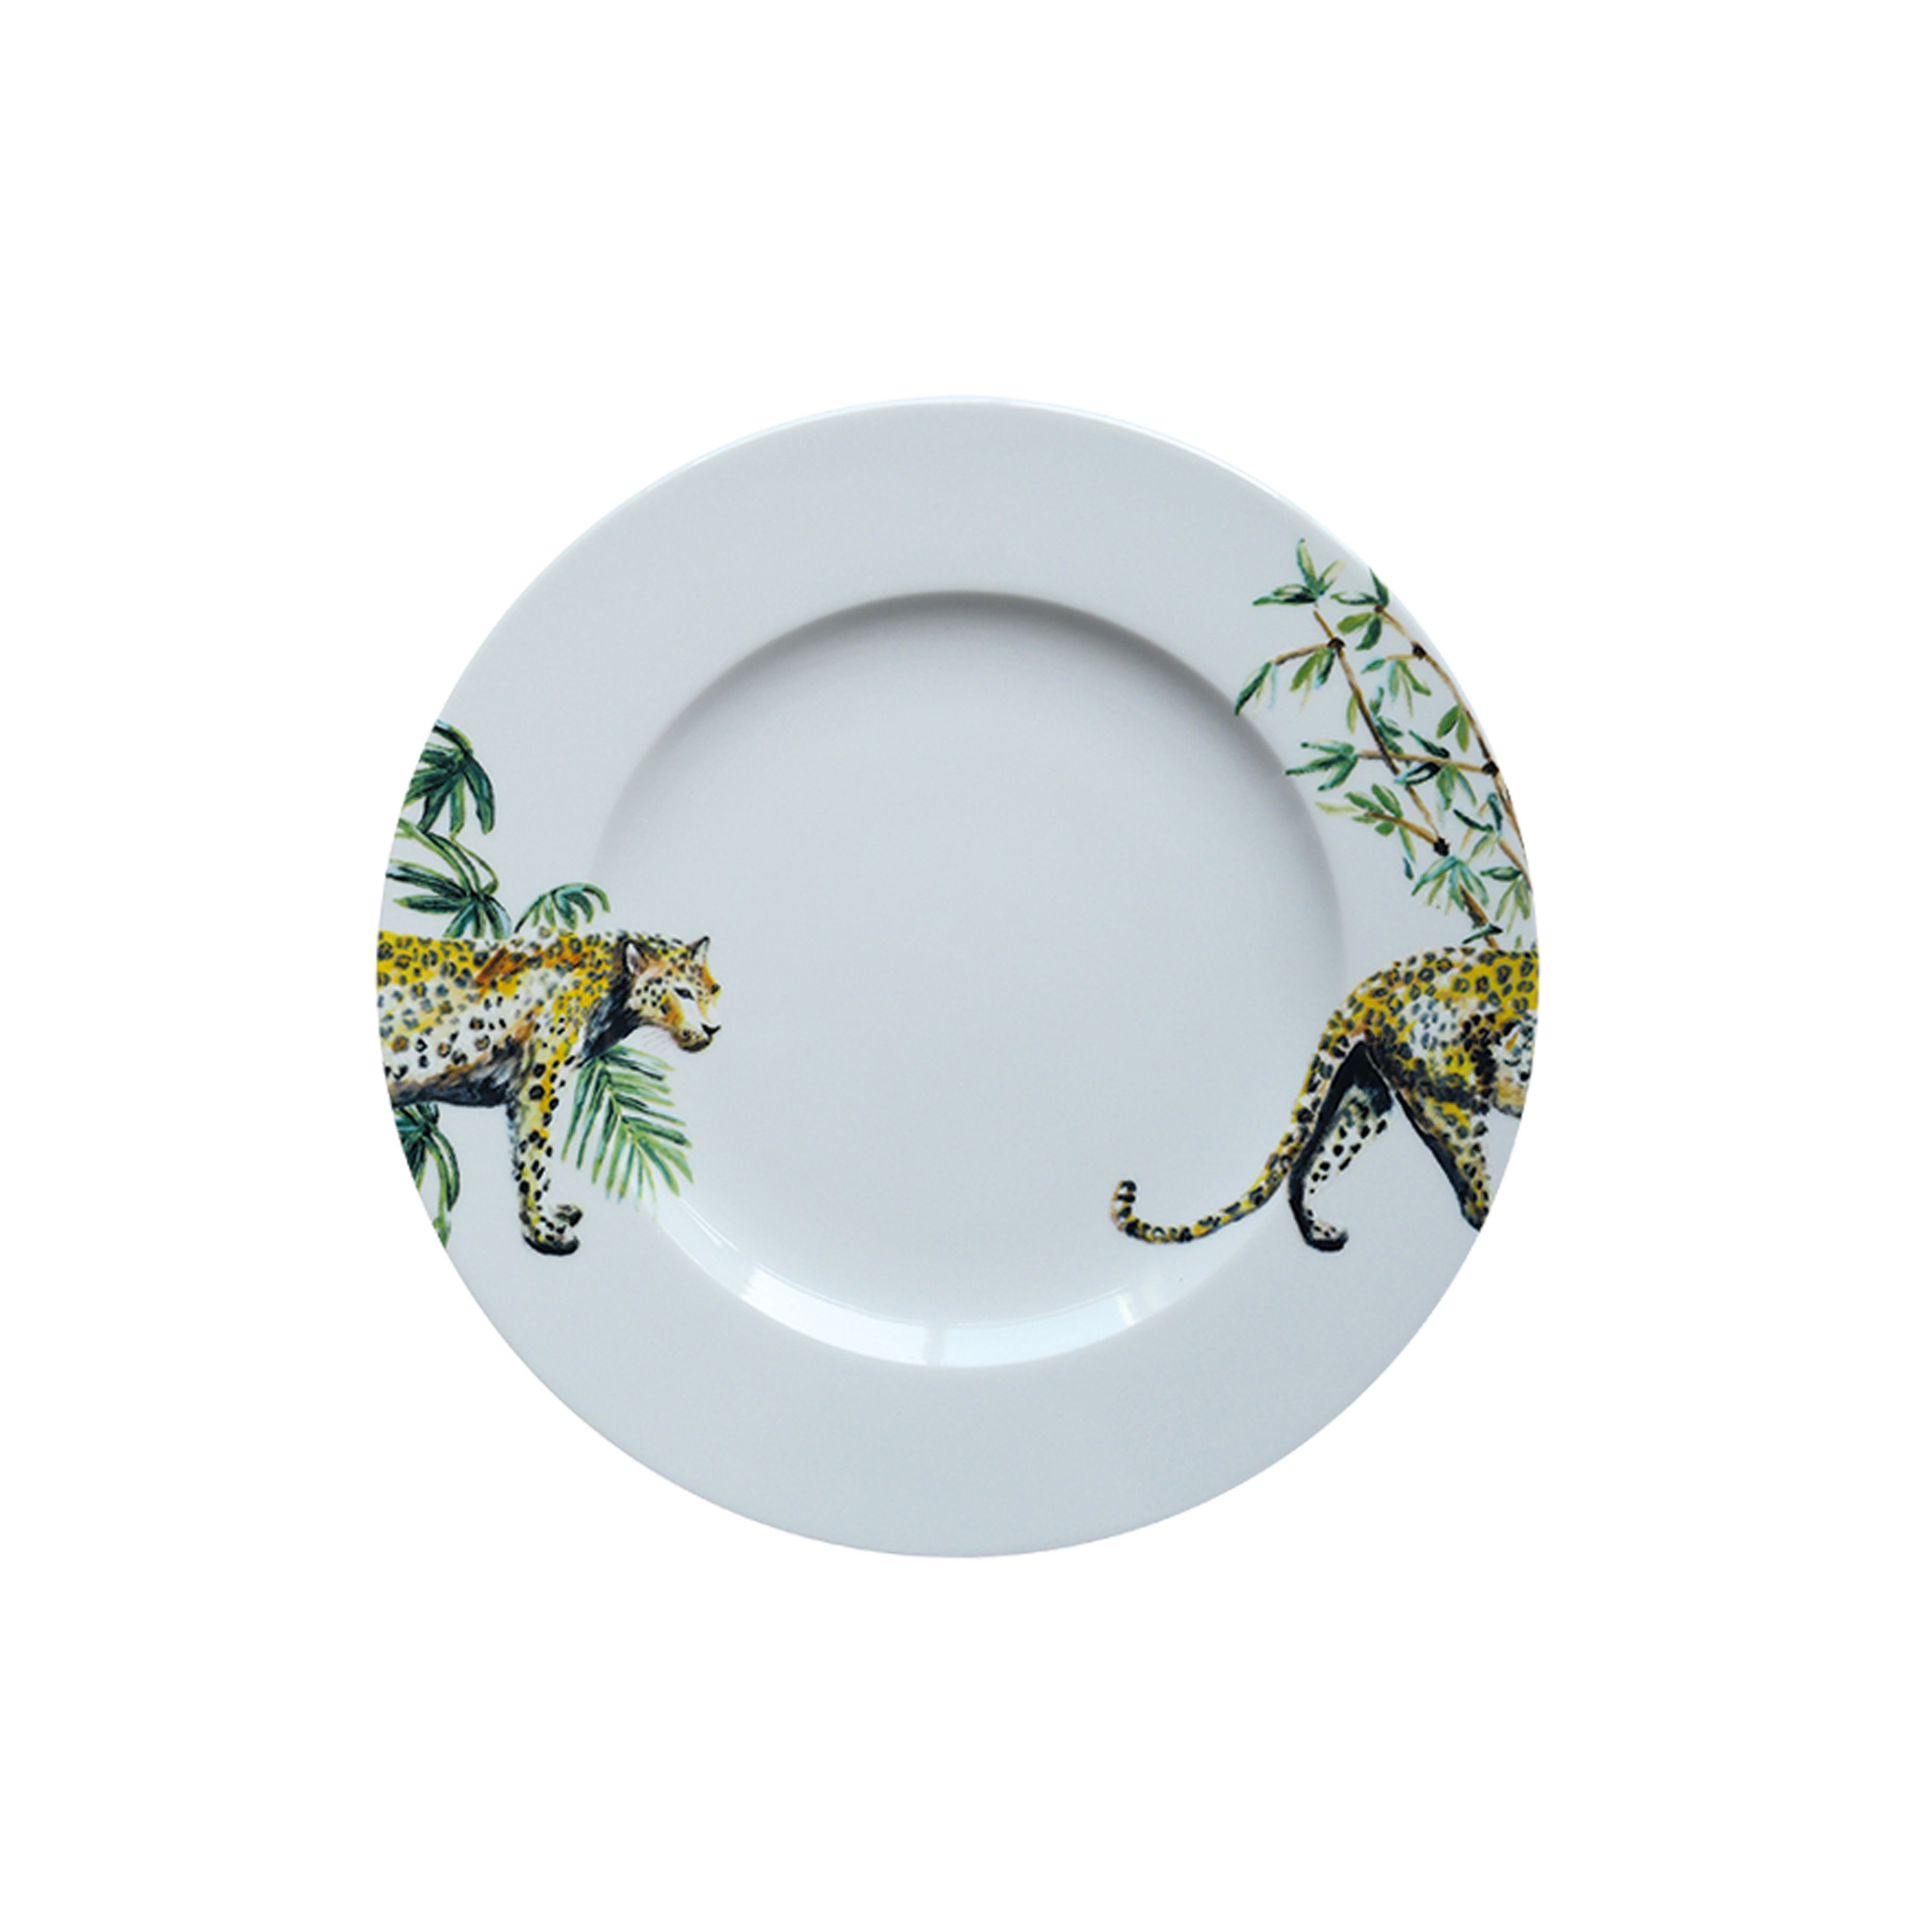 Catchii porcelain dinnerware dutch design new collection microwave safe dishwasher safe  sc 1 st  Pinterest : microwave safe dinner plates - pezcame.com